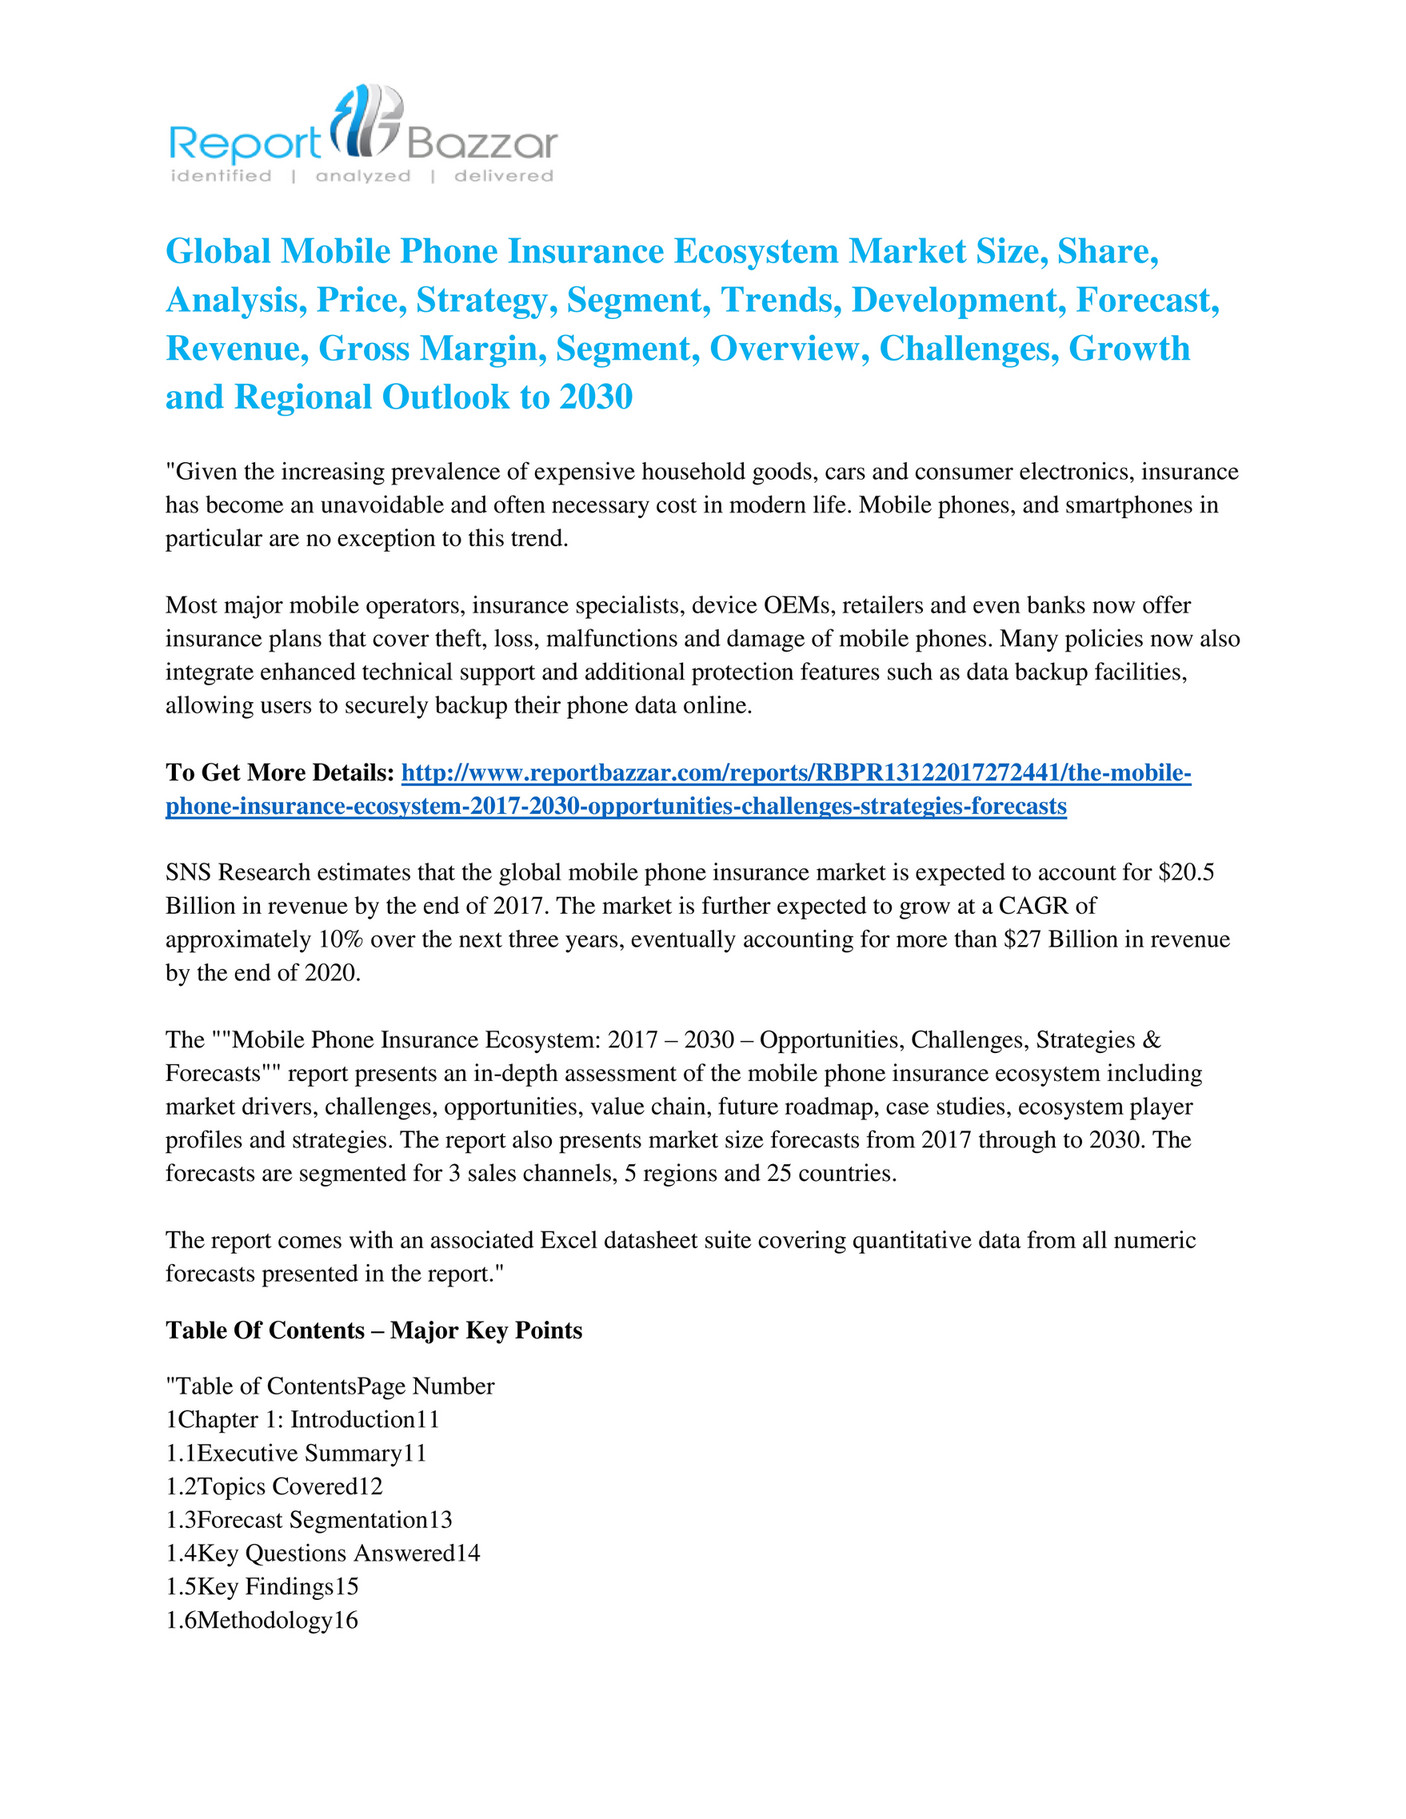 Report Bazzar - Mobile Phone Insurance Ecosystem Market - Global